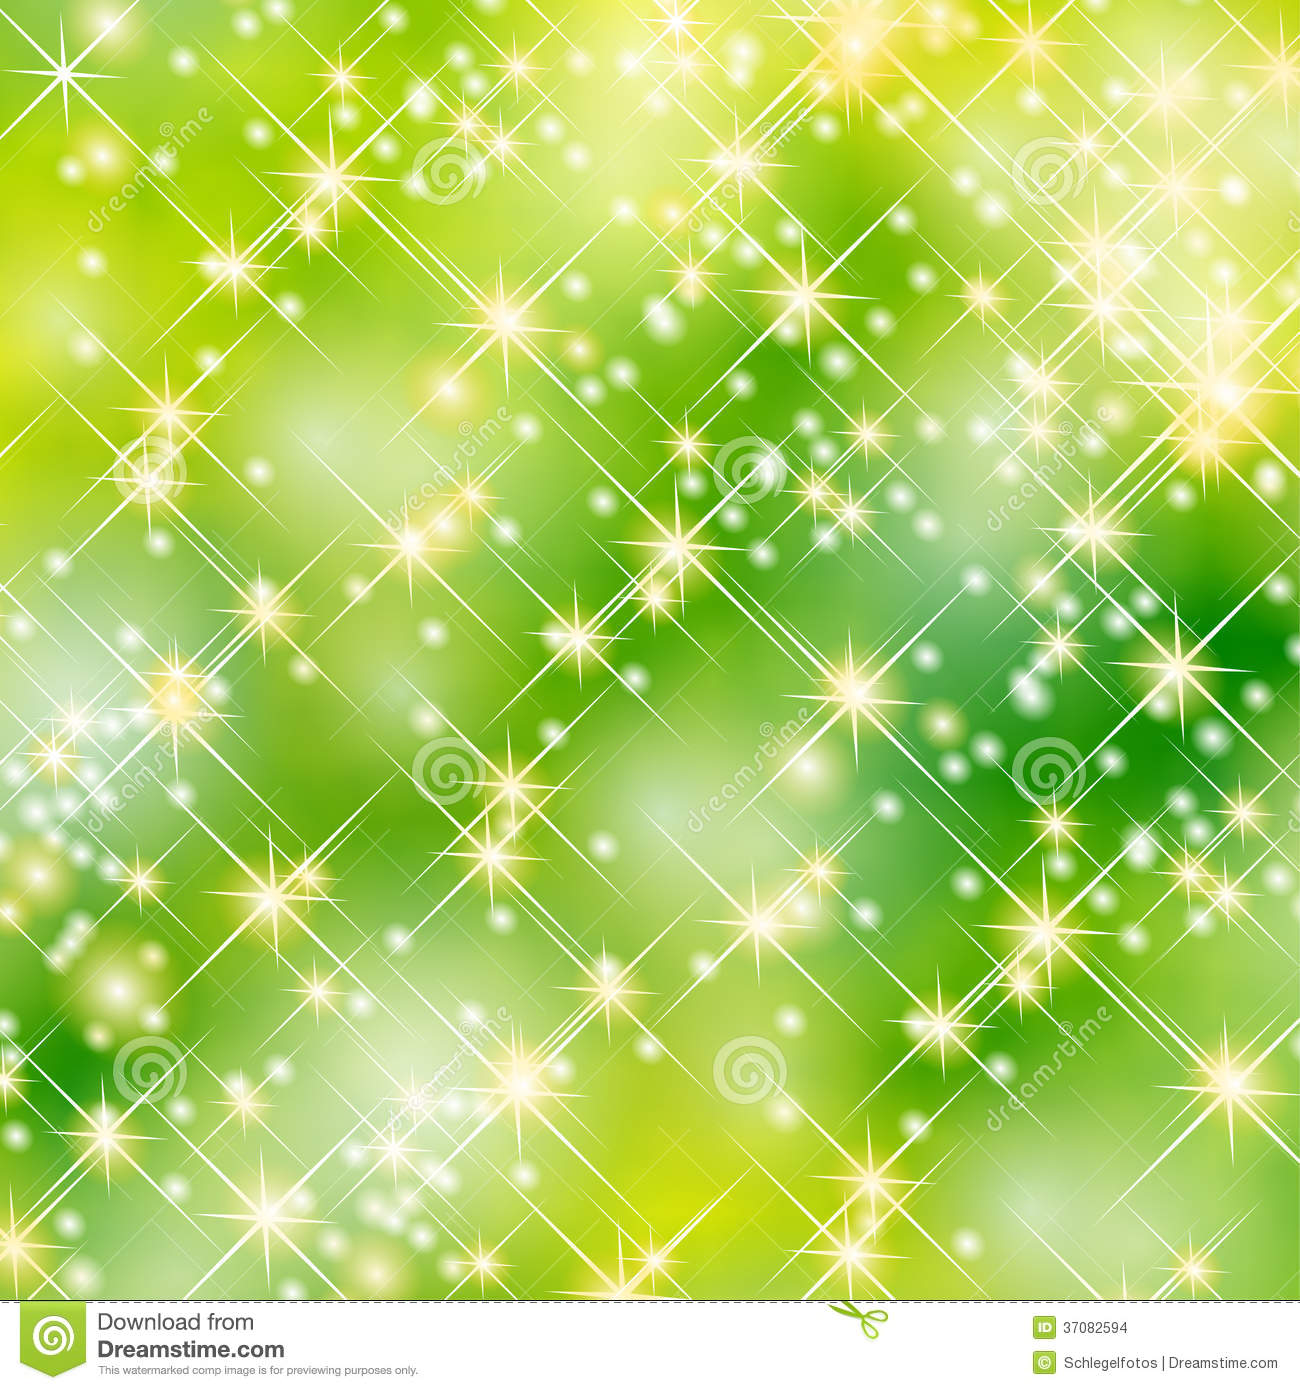 Green Stars Party Background Stock Images - Image: 37082594